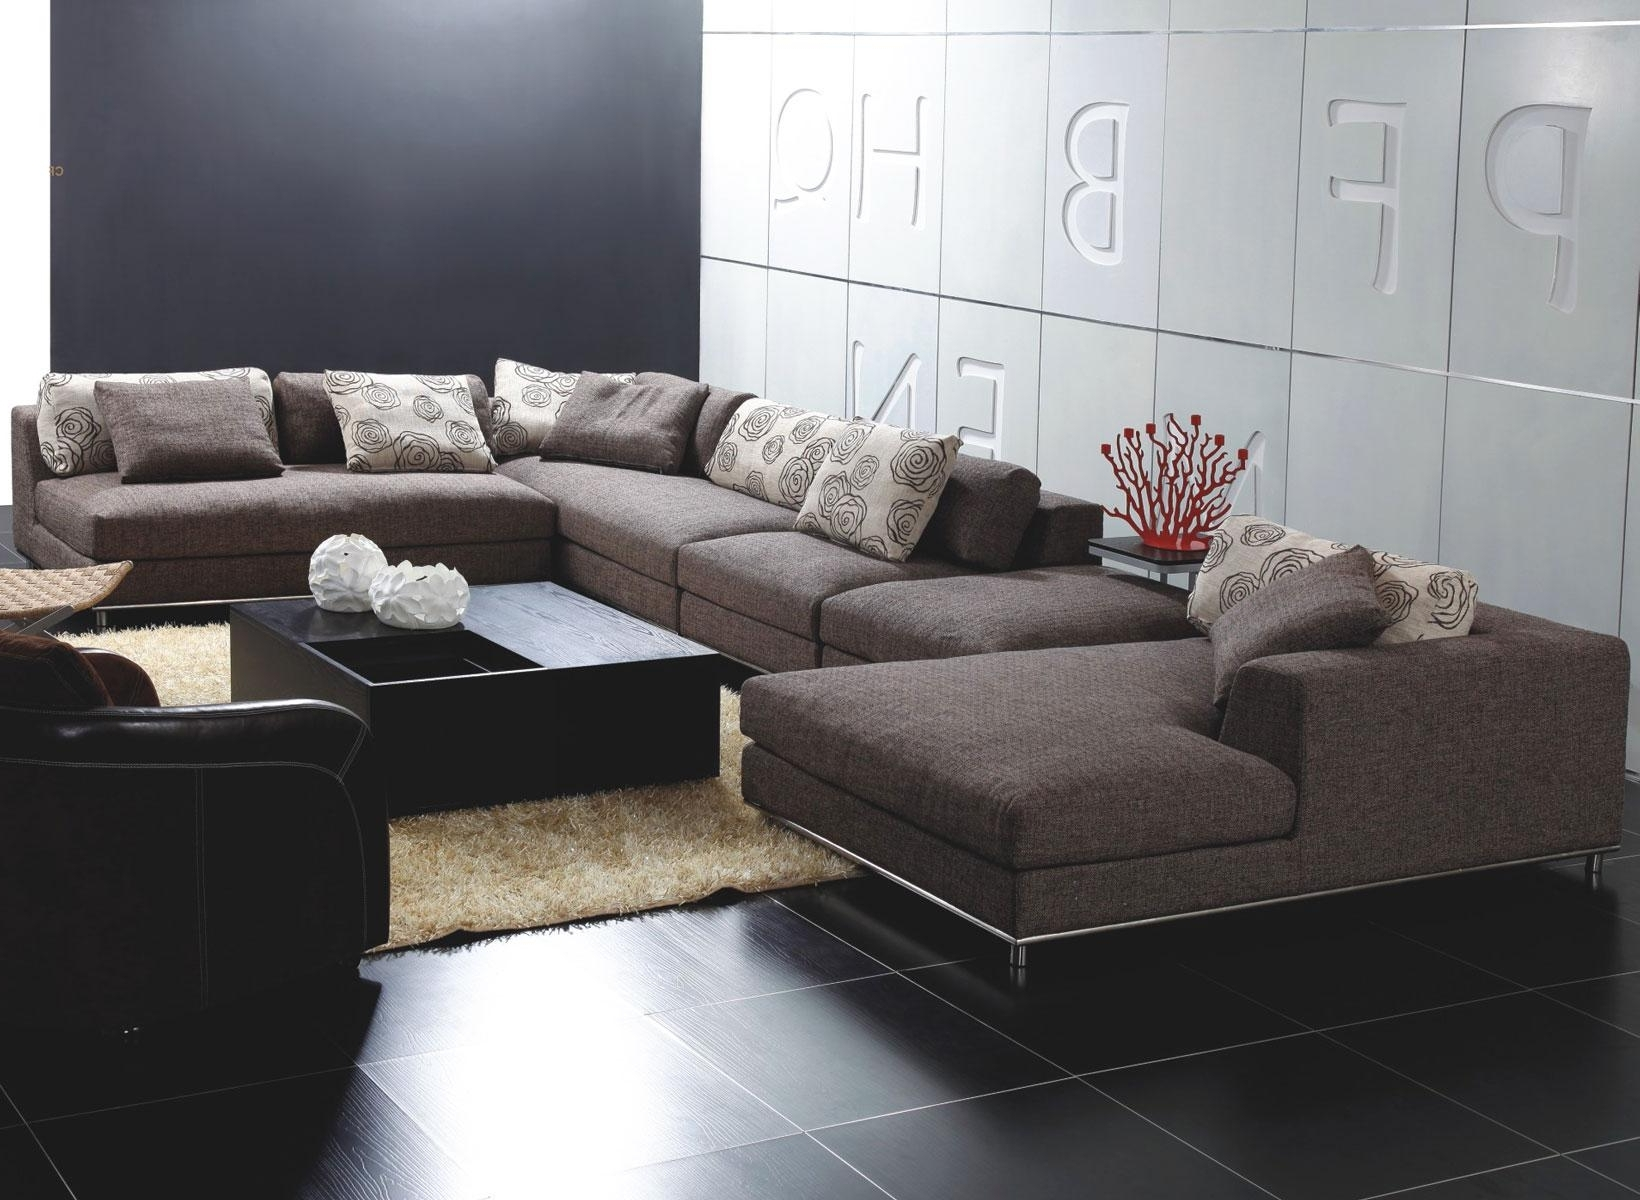 Unique Sectional Sofas Regarding Newest Stunning Modern Sectional Sofas With Chaise On Leather Reclining (View 11 of 15)